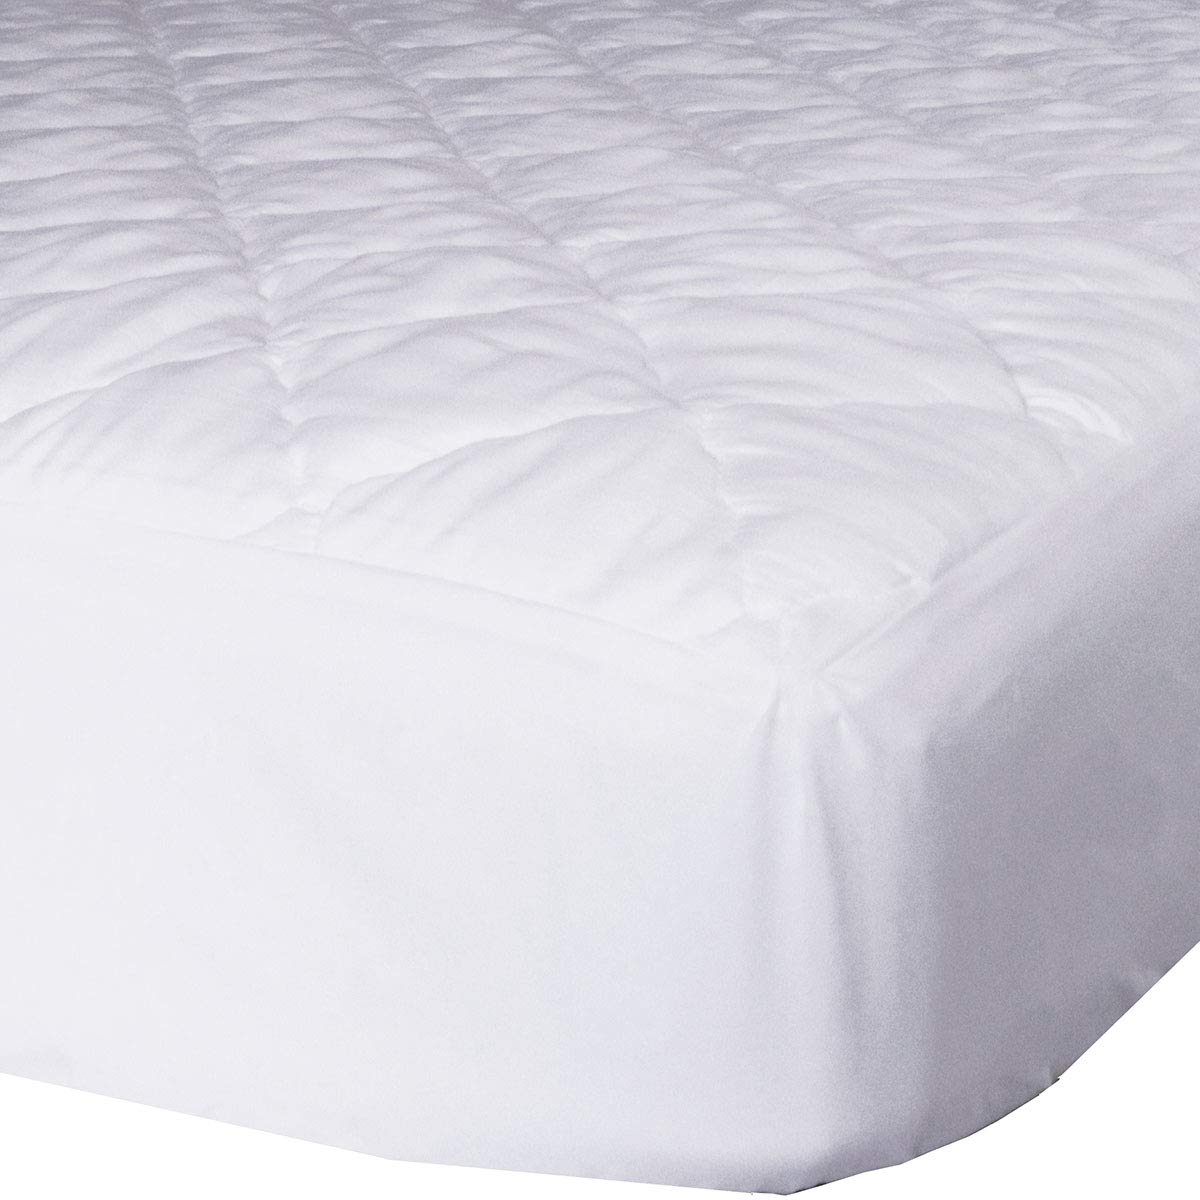 AB Lifestyles RV Camper Short King 72x75 USA Made Quilted Mattress Pad Cover